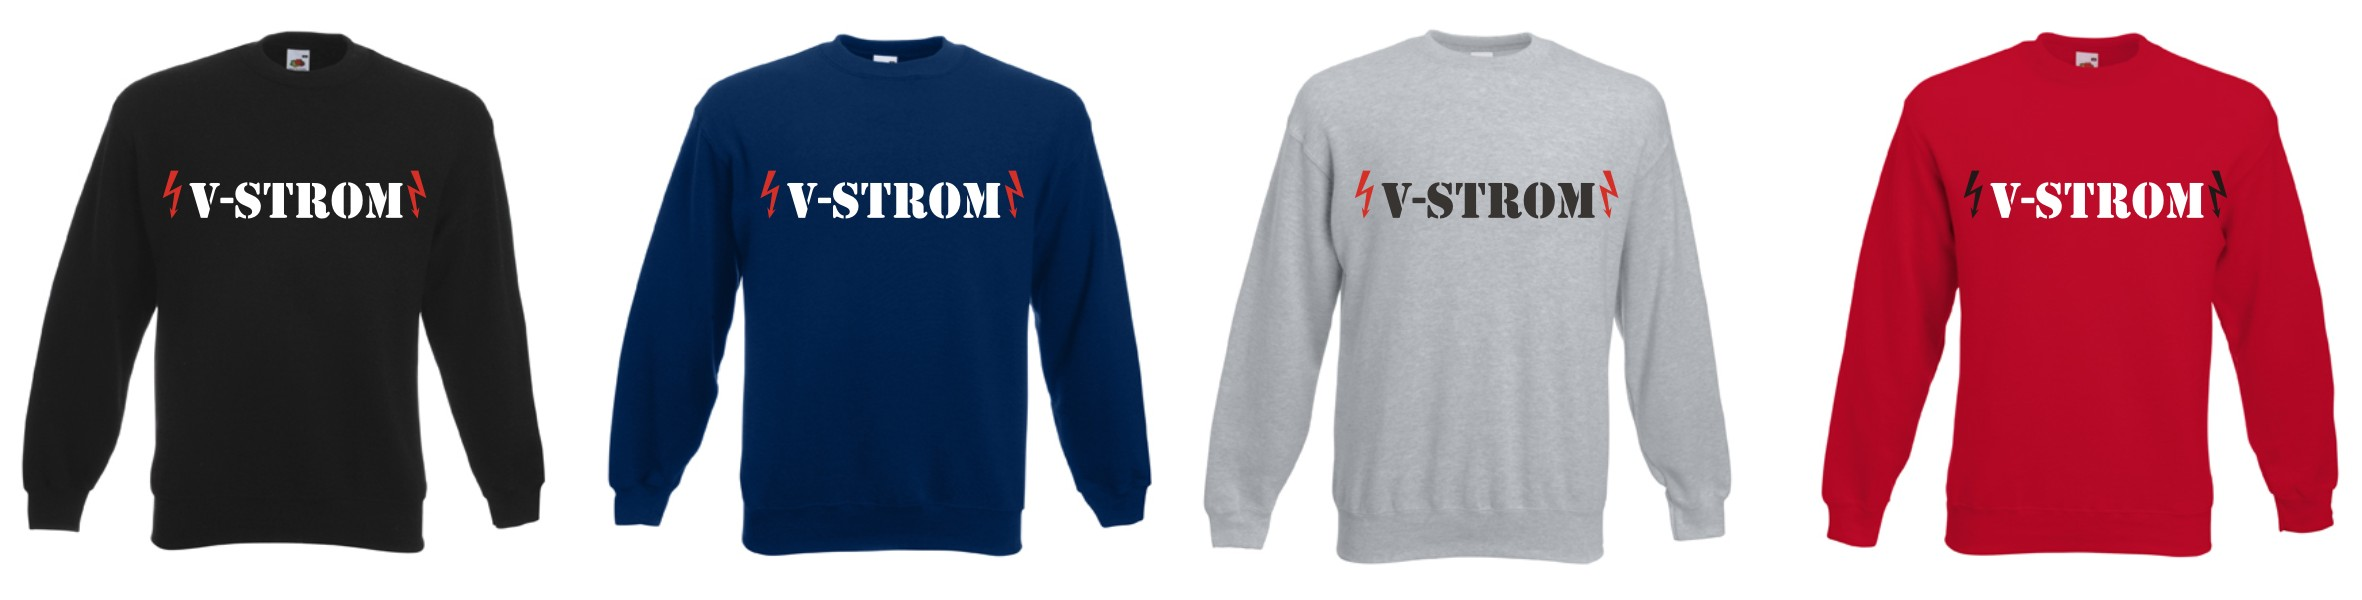 v strom sweatshirt f r suzuki motorrad fans sport enduro tourer sweat dolomiten ebay. Black Bedroom Furniture Sets. Home Design Ideas